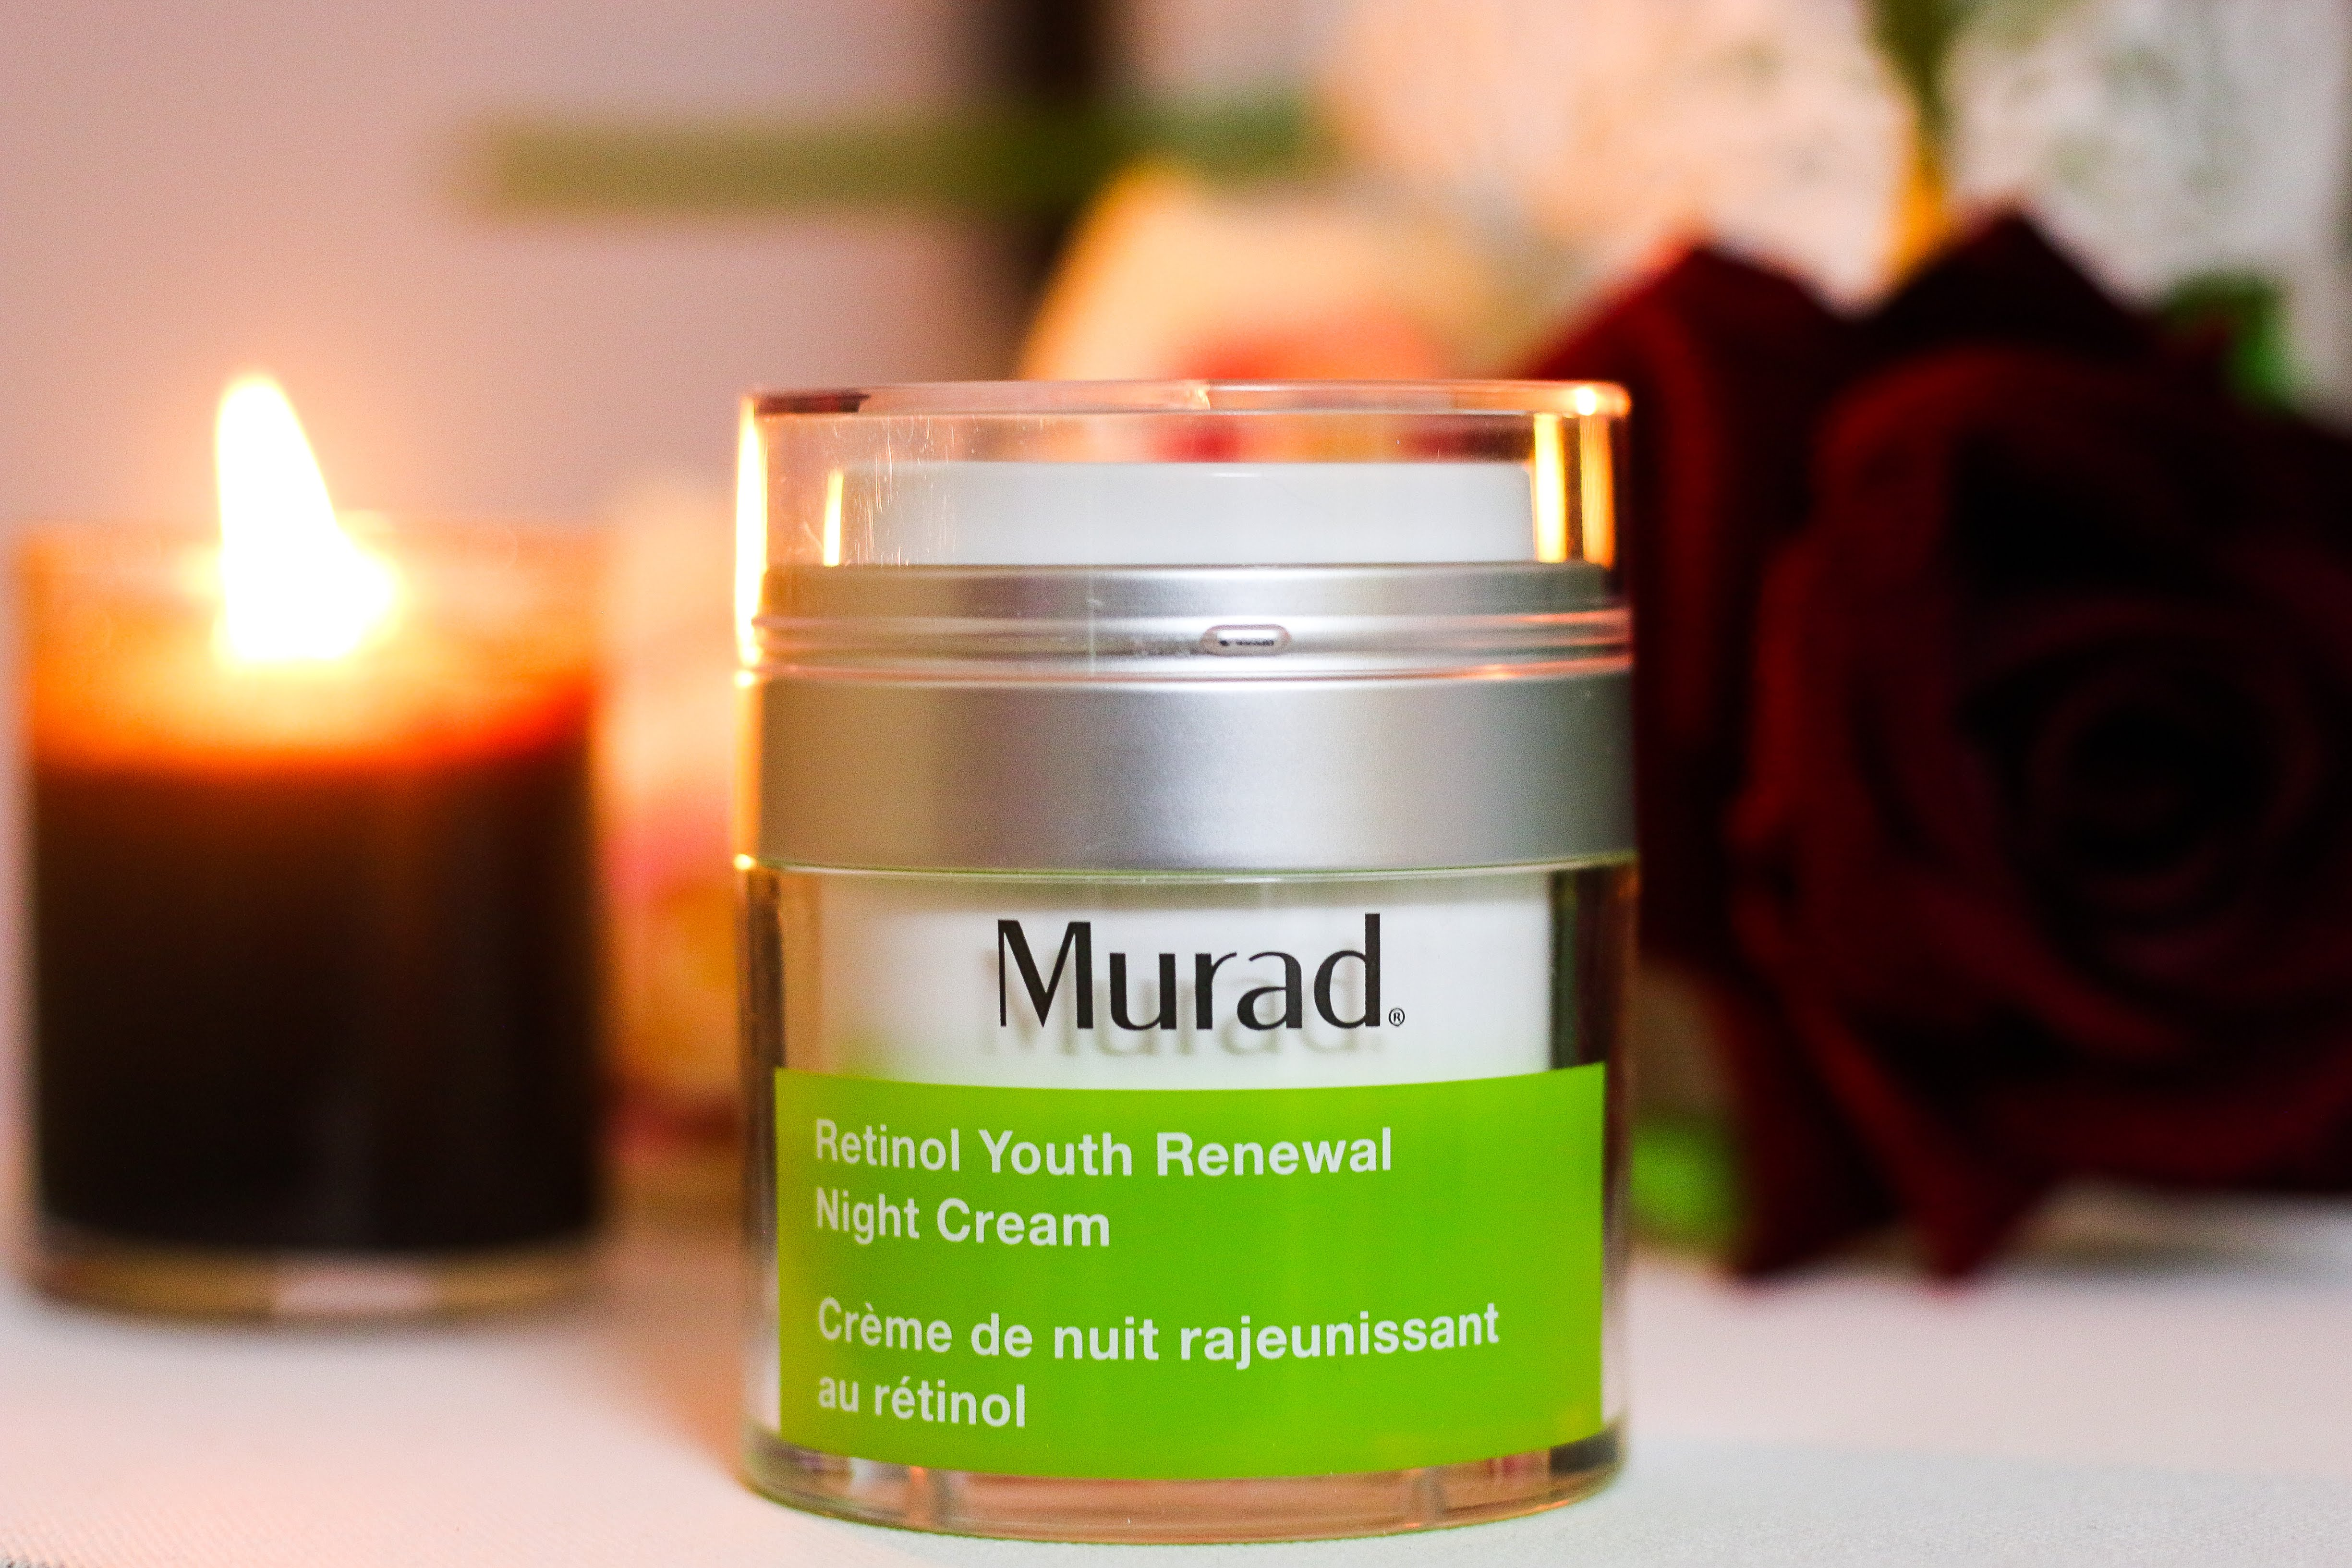 murad retinol youth renewal night cream ingredients, murad retinol youth renewal night cream price, buy murad retinol youth renewal night cream, murad retinol youth renewal night cream review, murad youth renewal retinol night cream review, murad retinol youth renewal night cream